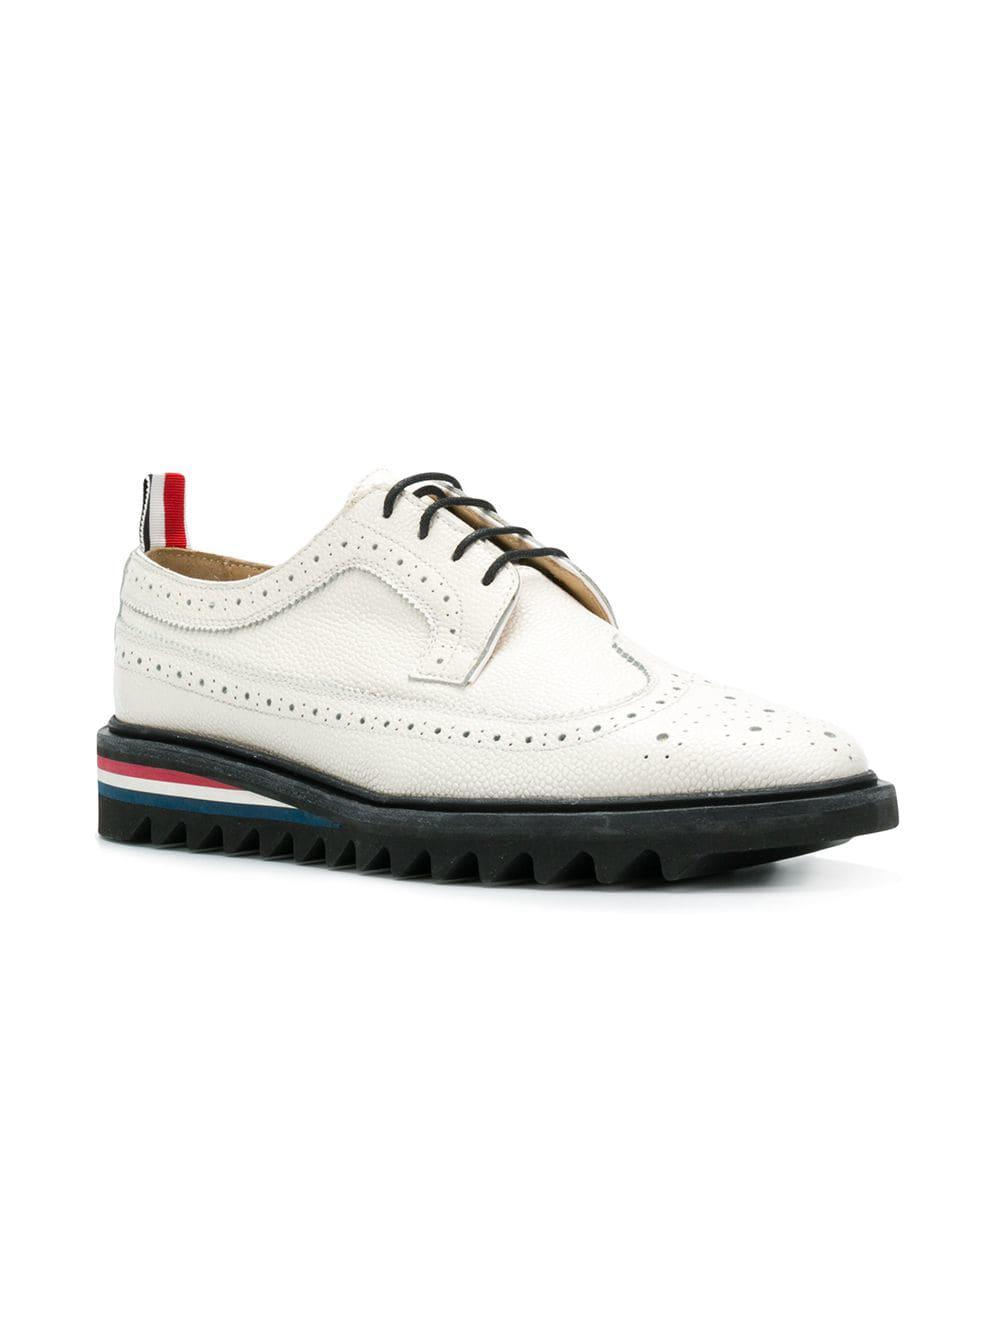 Zapatos de vestir longwing Thom Browne de Cuero de color Blanco